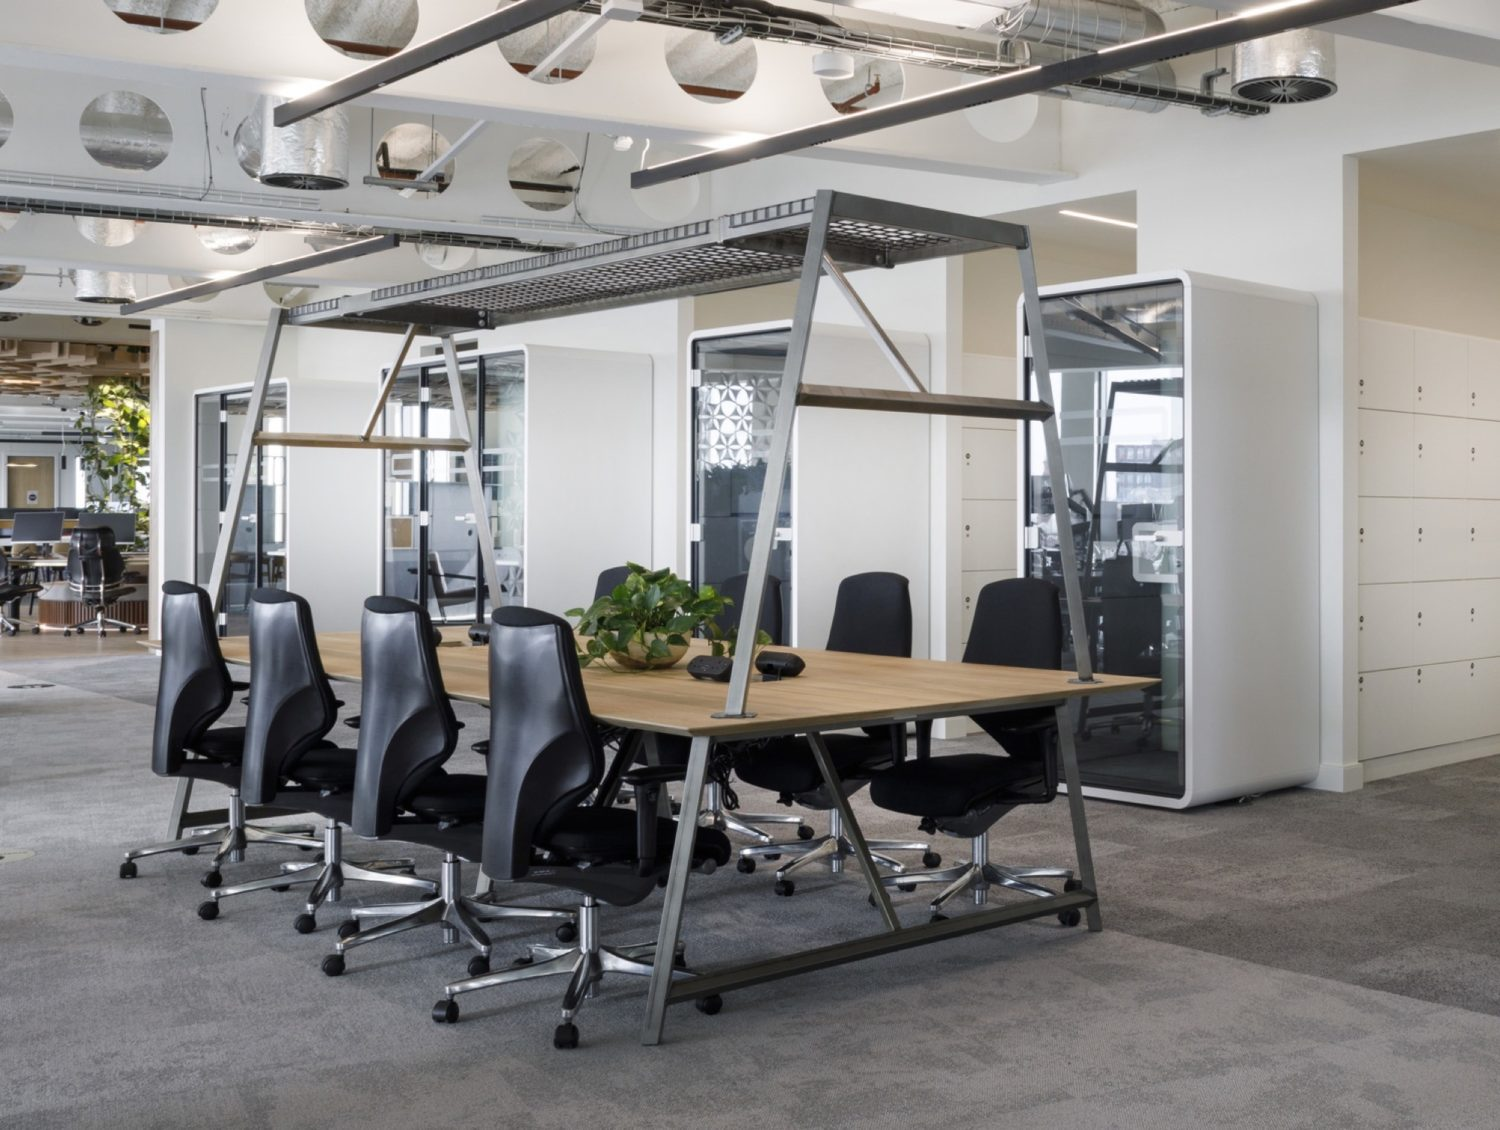 JLL Manchester office fit out for wellbeing